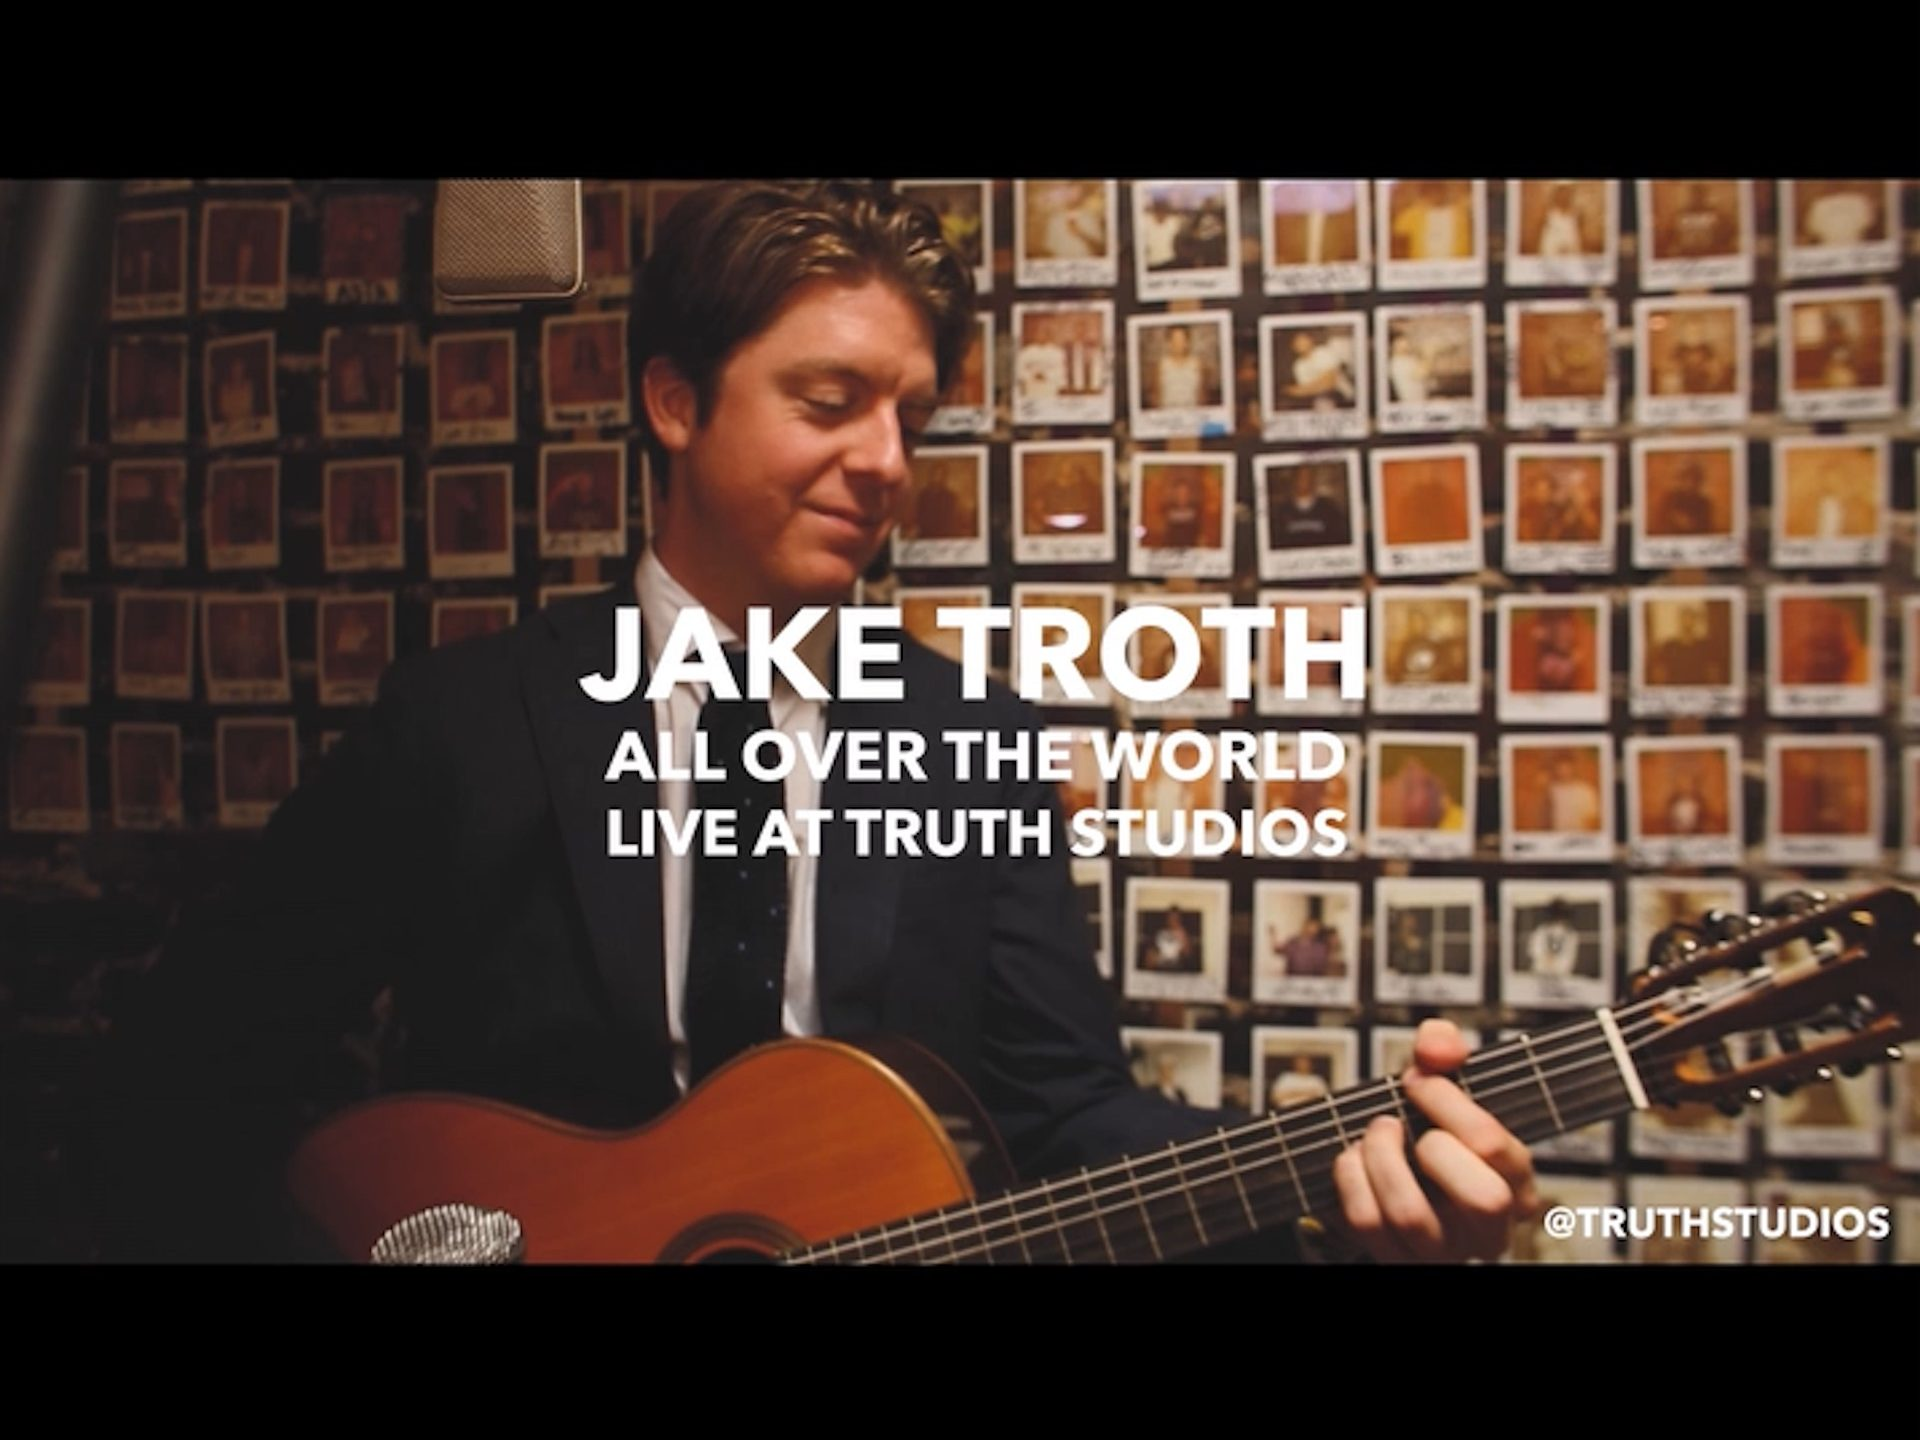 Jake Troth - All Over The World (Live at Truth Studios)